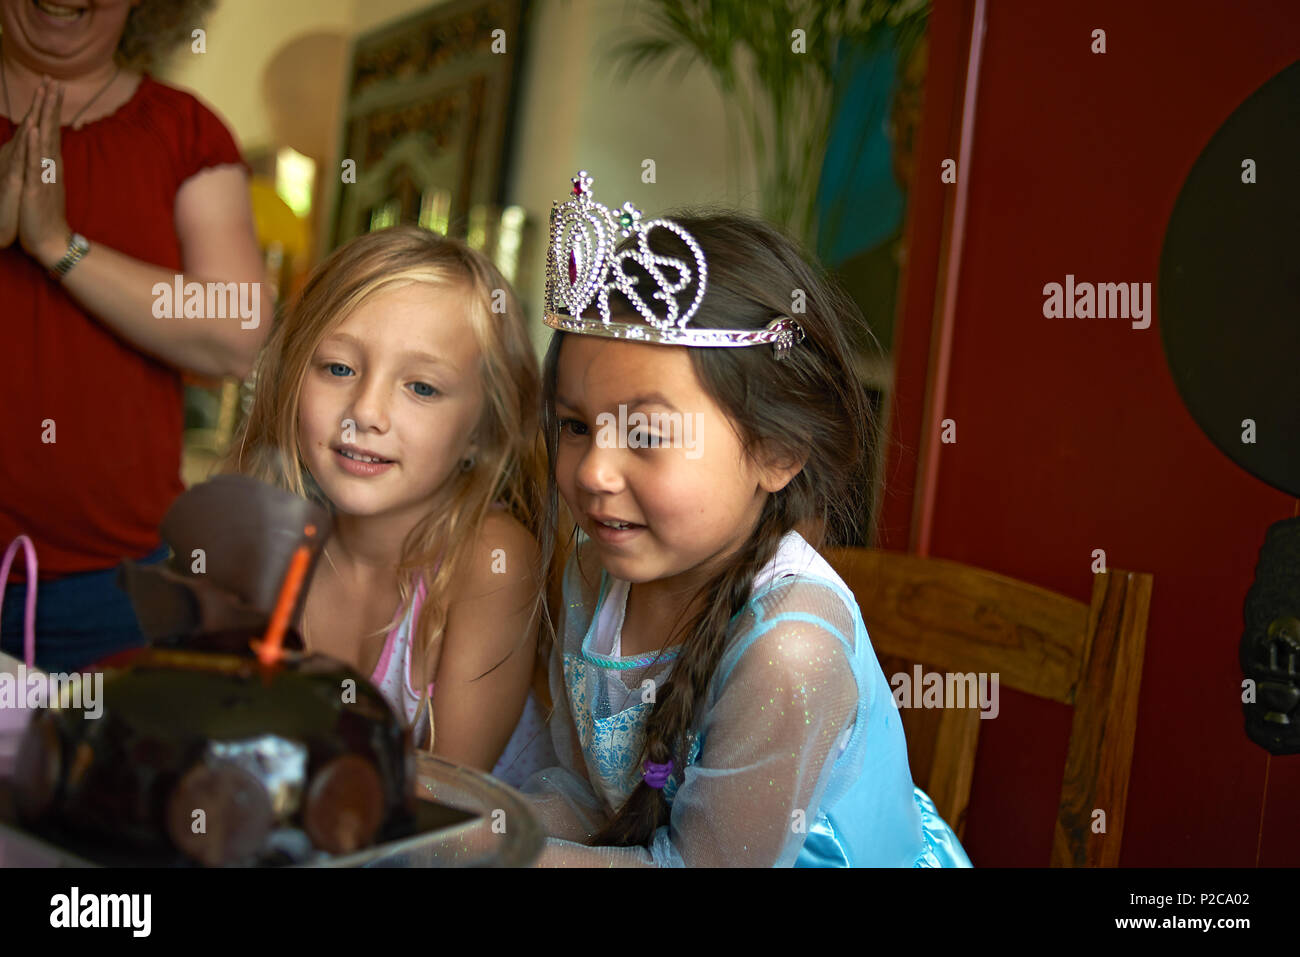 Cute little preteen Asian girl wearing a princess dress and a tiara blowing out the candles on her birthday cake with her best friend sitting with her - Stock Image